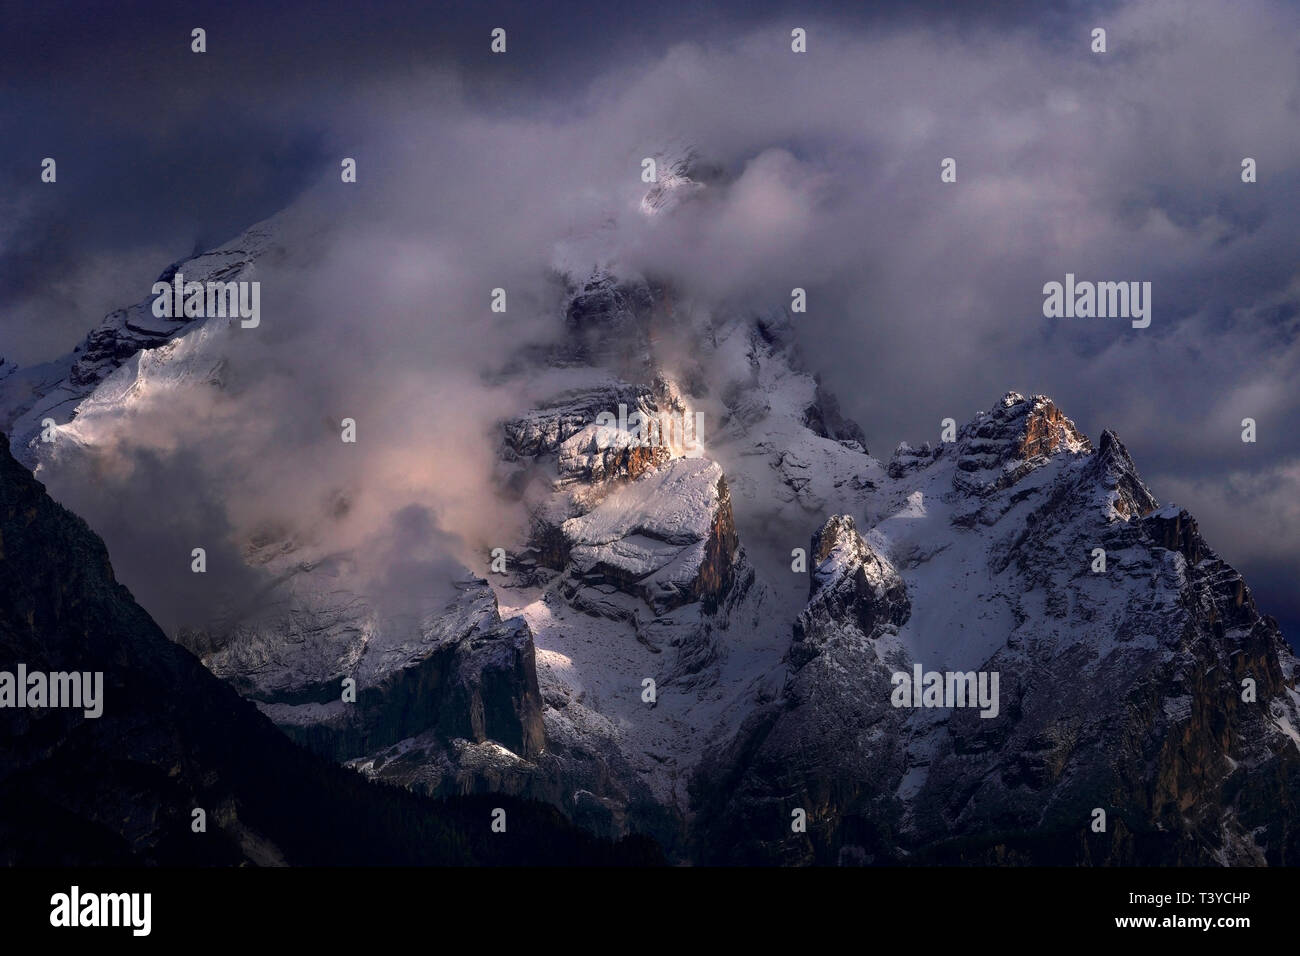 The majesty of Mount Antelao, the highest peak of the region of Cadore, as seen at sunset from the fields surrounding the town of Cortina d'Ampezzo, d - Stock Image